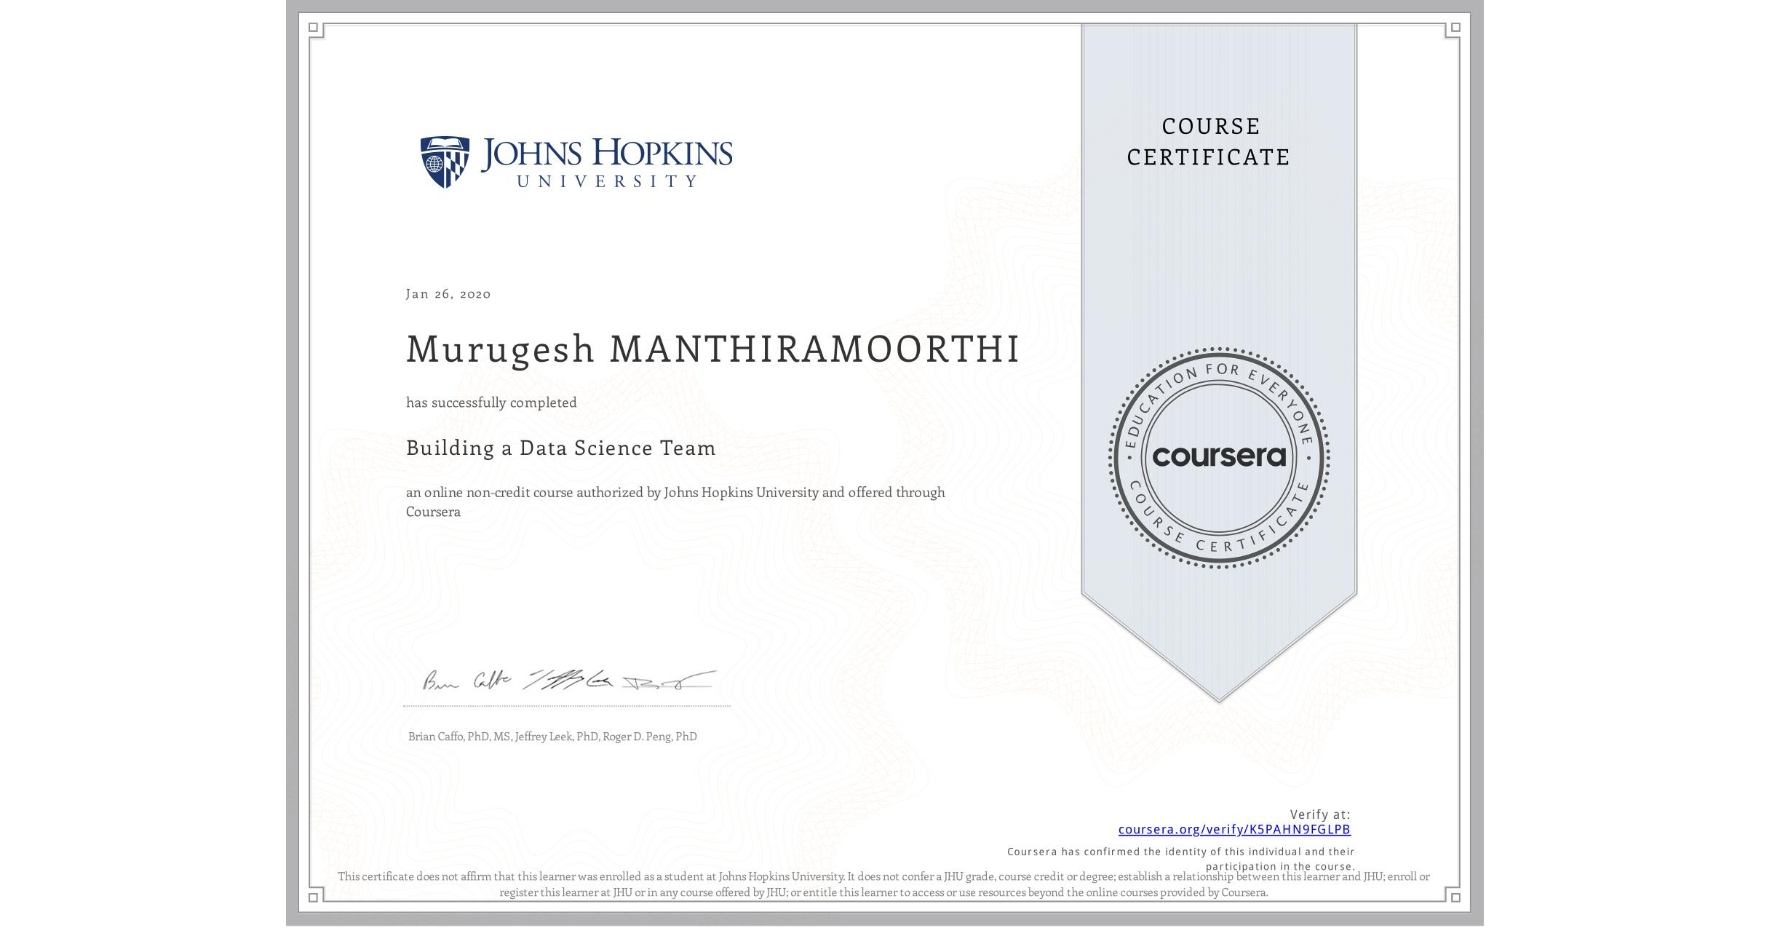 View certificate for Murugesh Manthiramoorthi, Building a Data Science Team, an online non-credit course authorized by Johns Hopkins University and offered through Coursera